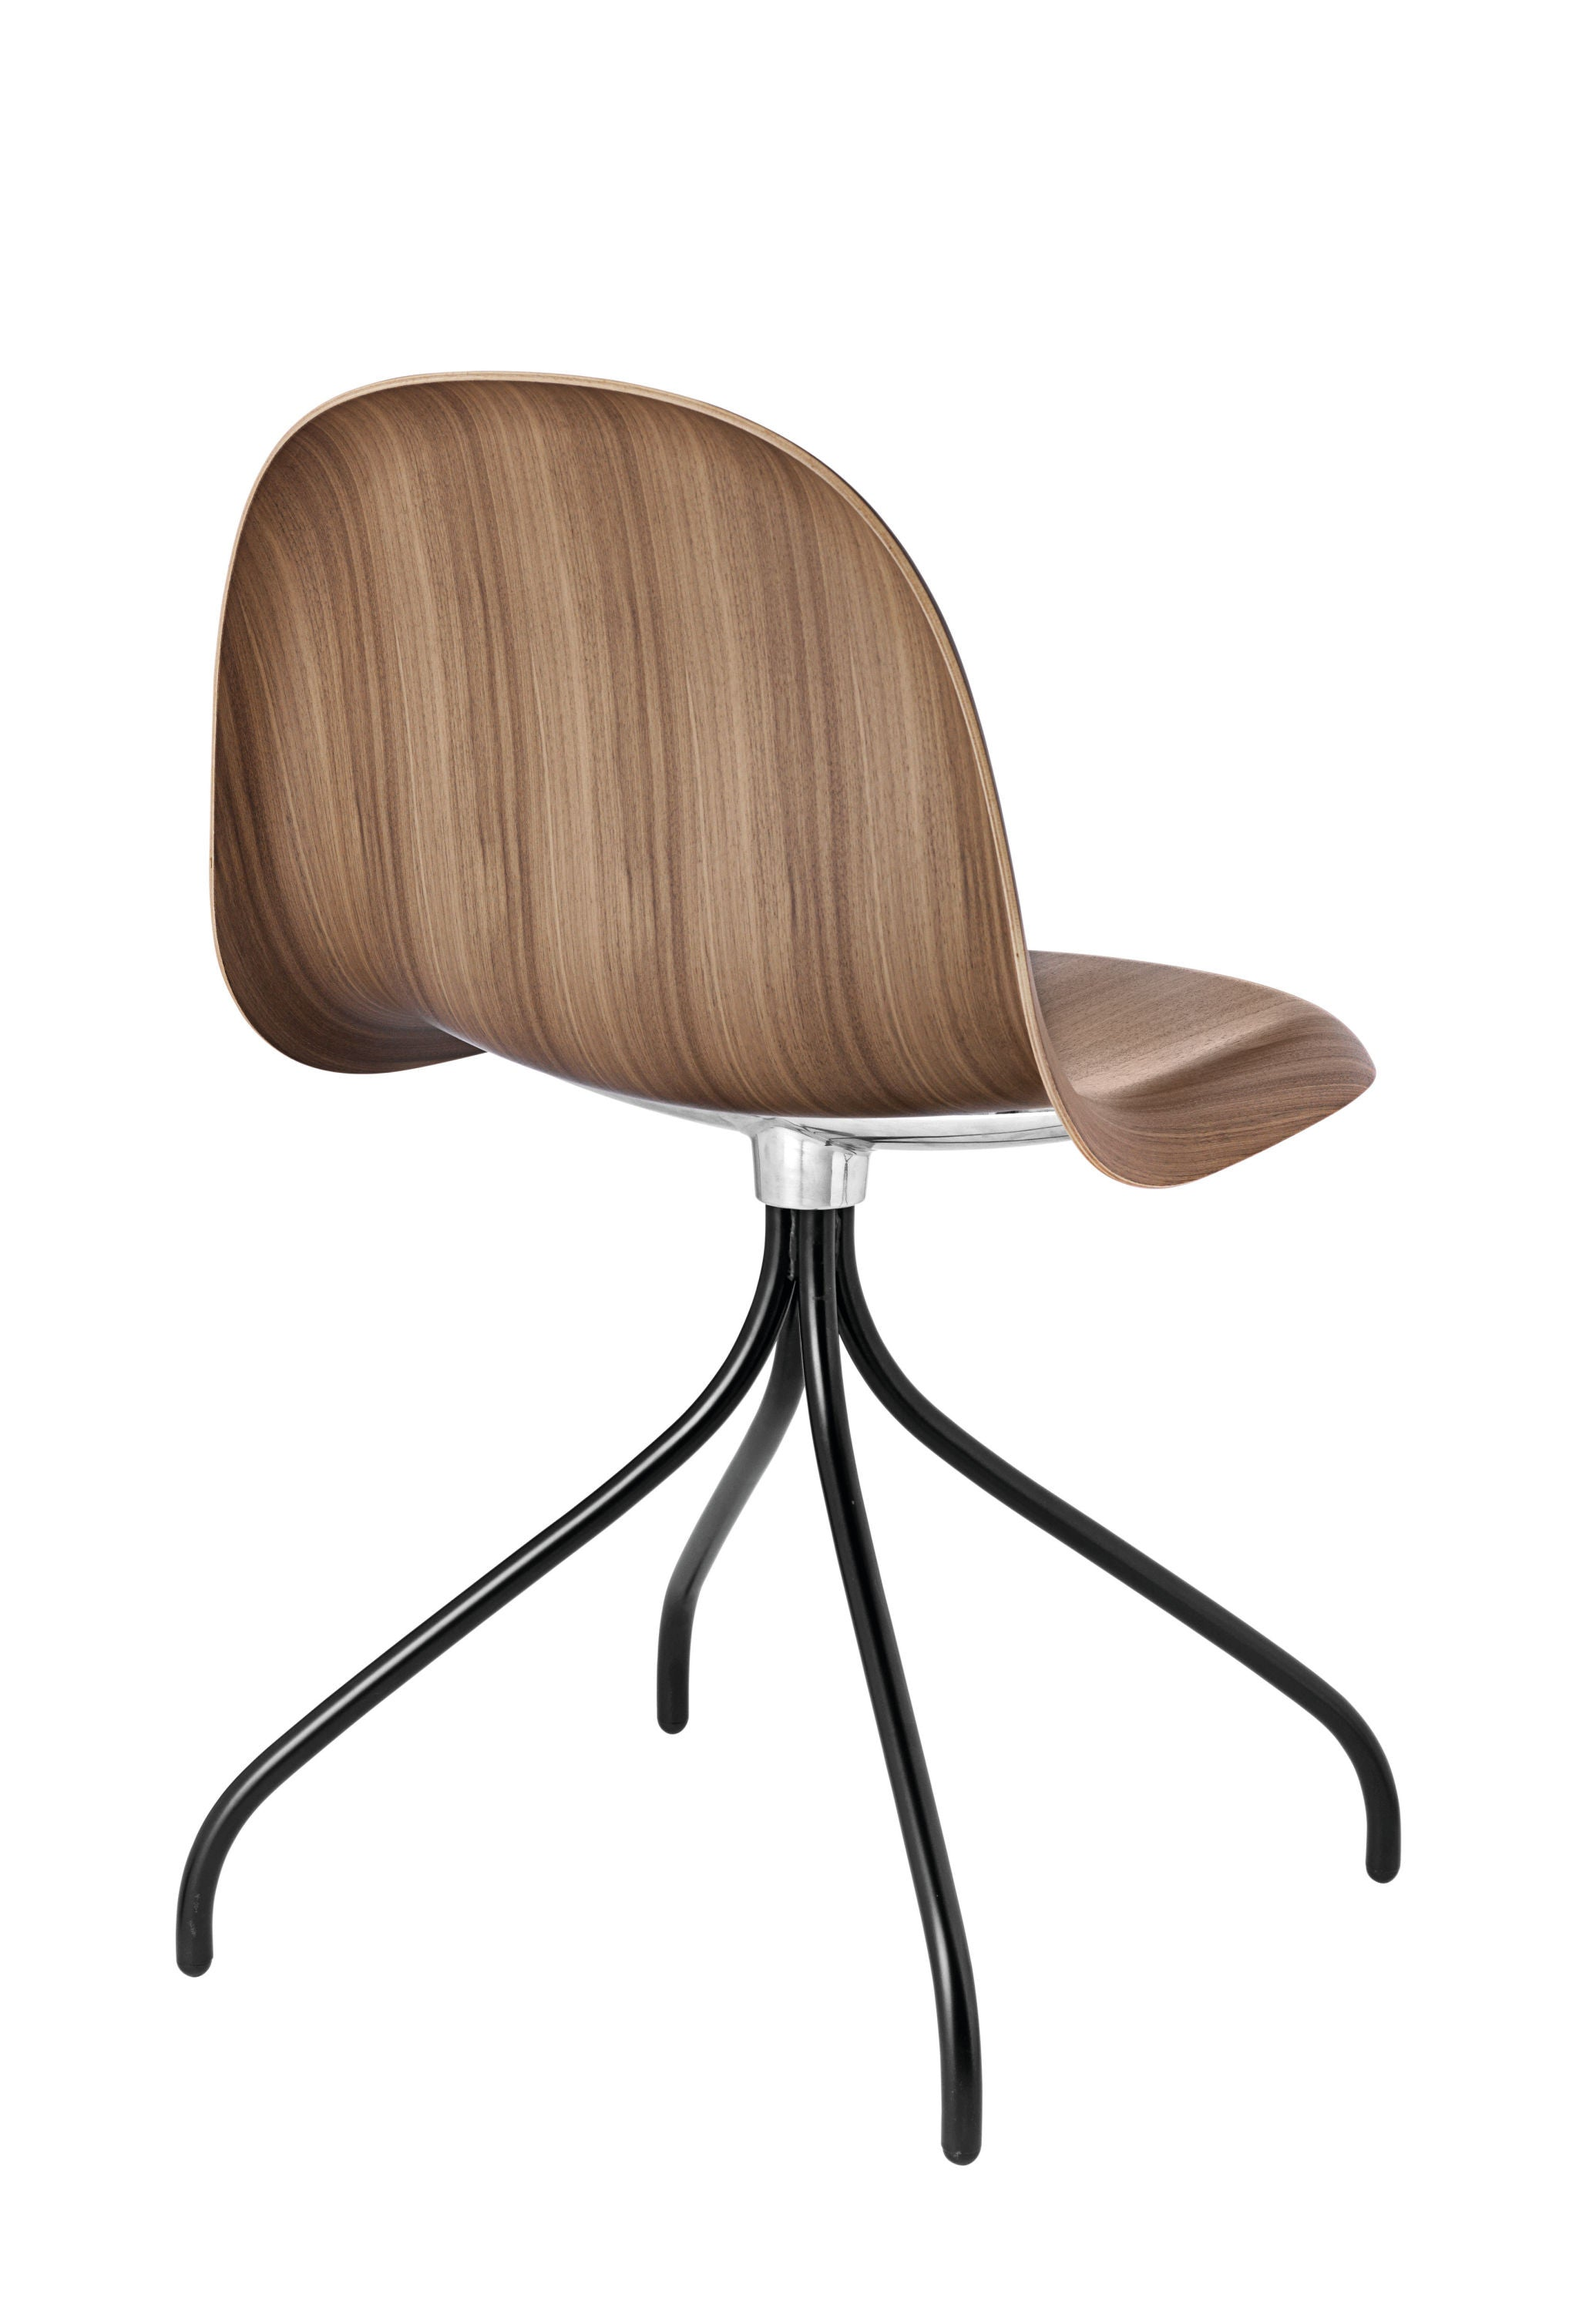 3D Dining Chair - Un-upholstered Swivel Black base, American Walnut shell fra GUBI